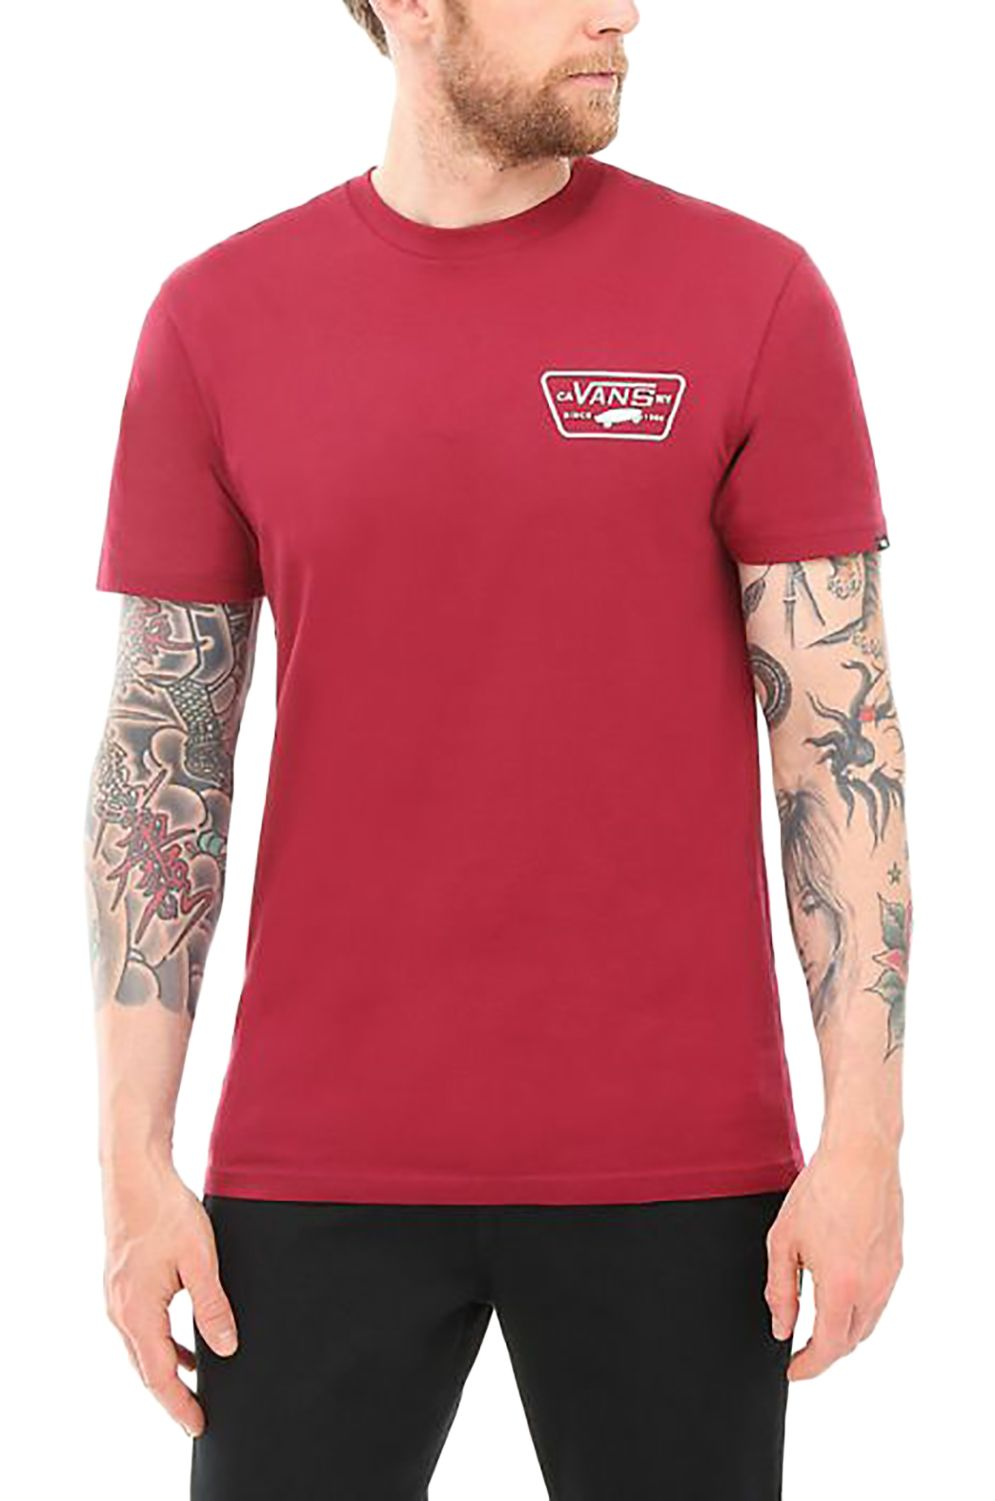 29d10679 Vans T-Shirt FULL PATCH BACK Rhumba Red/White